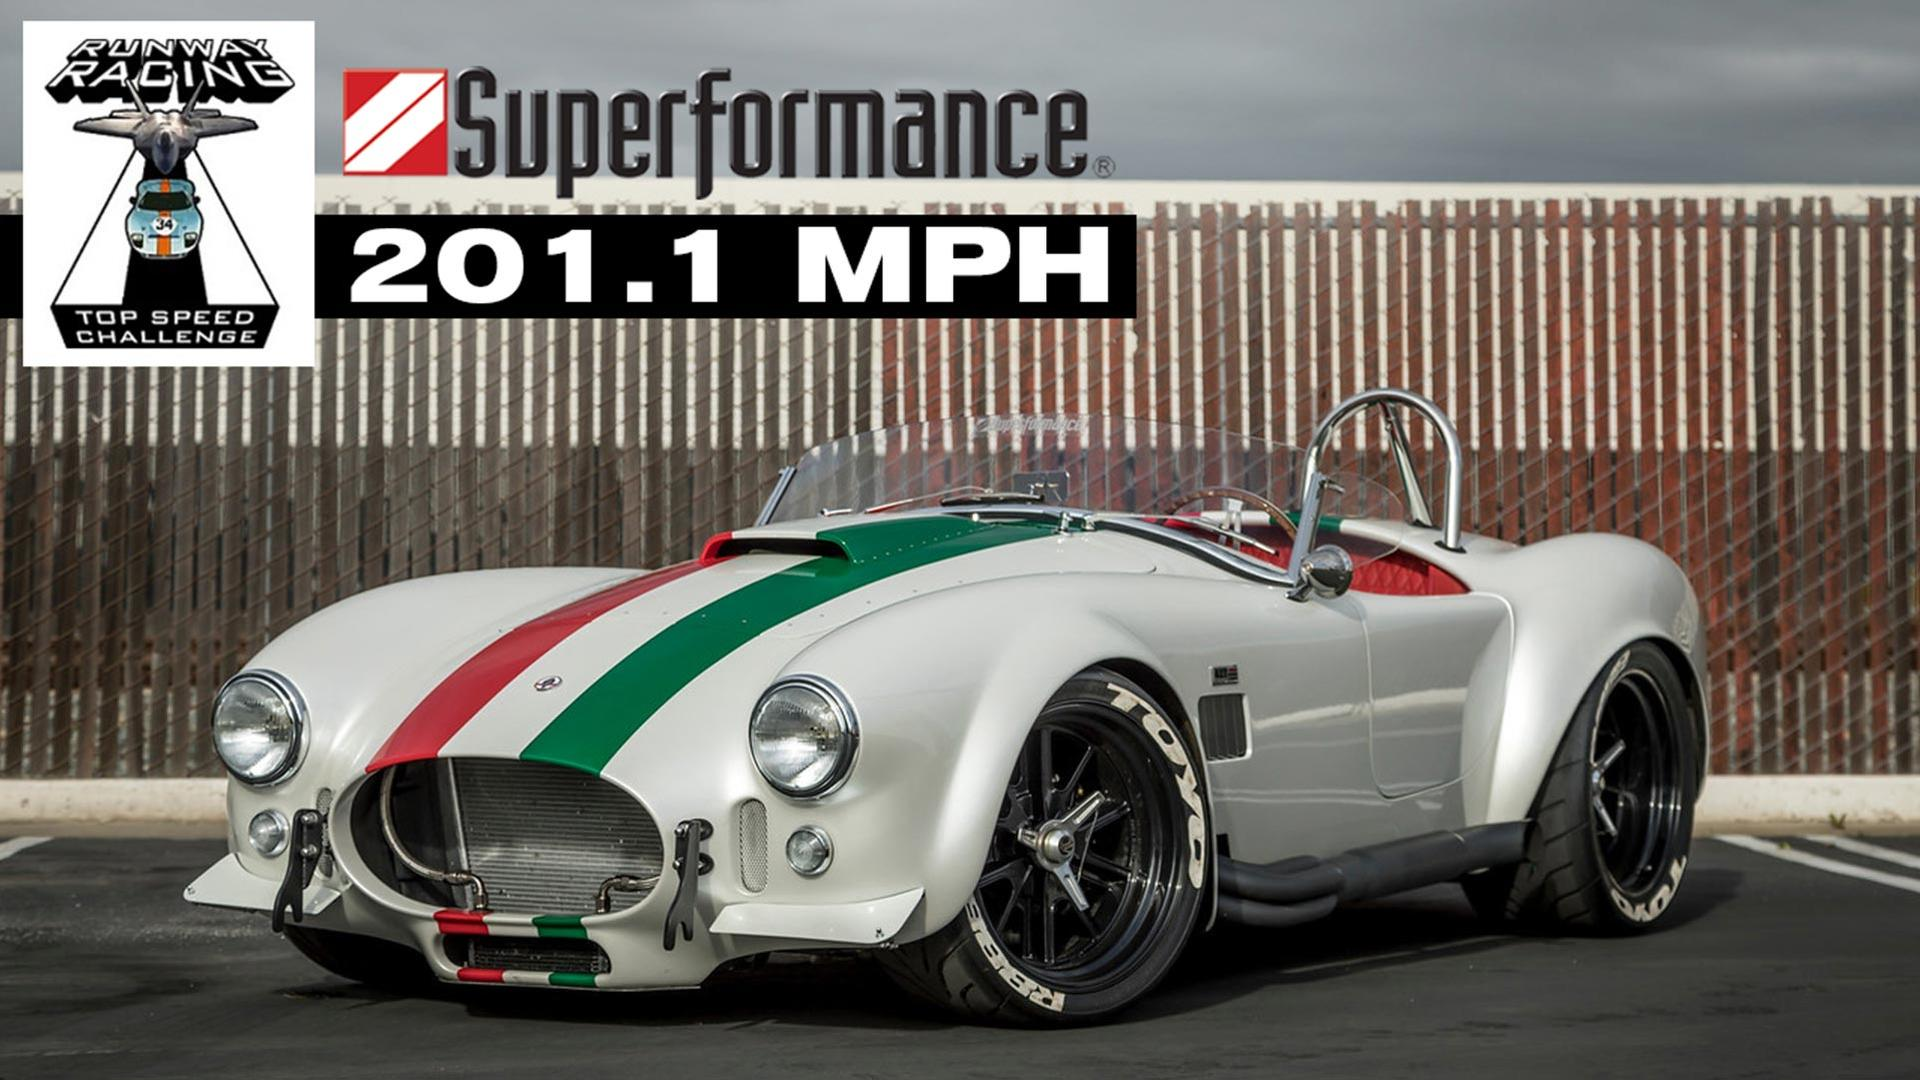 Superformance S Cobra Is The Fastest Ever Hitting 201 Mph